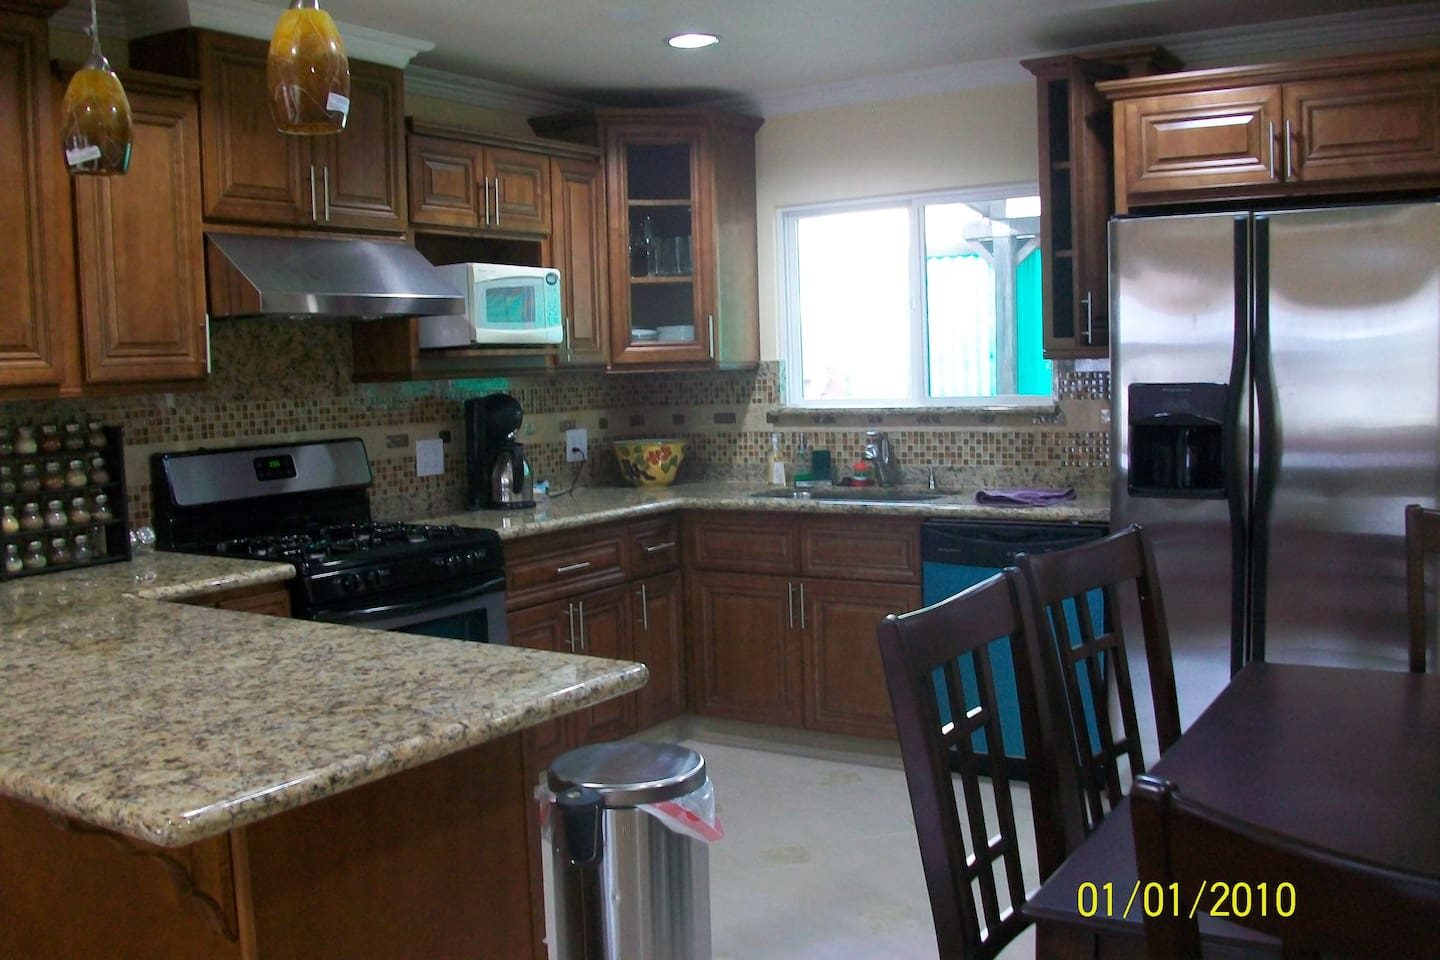 Fully remodeled kitchen with granite countertop and stainless steel appliances.